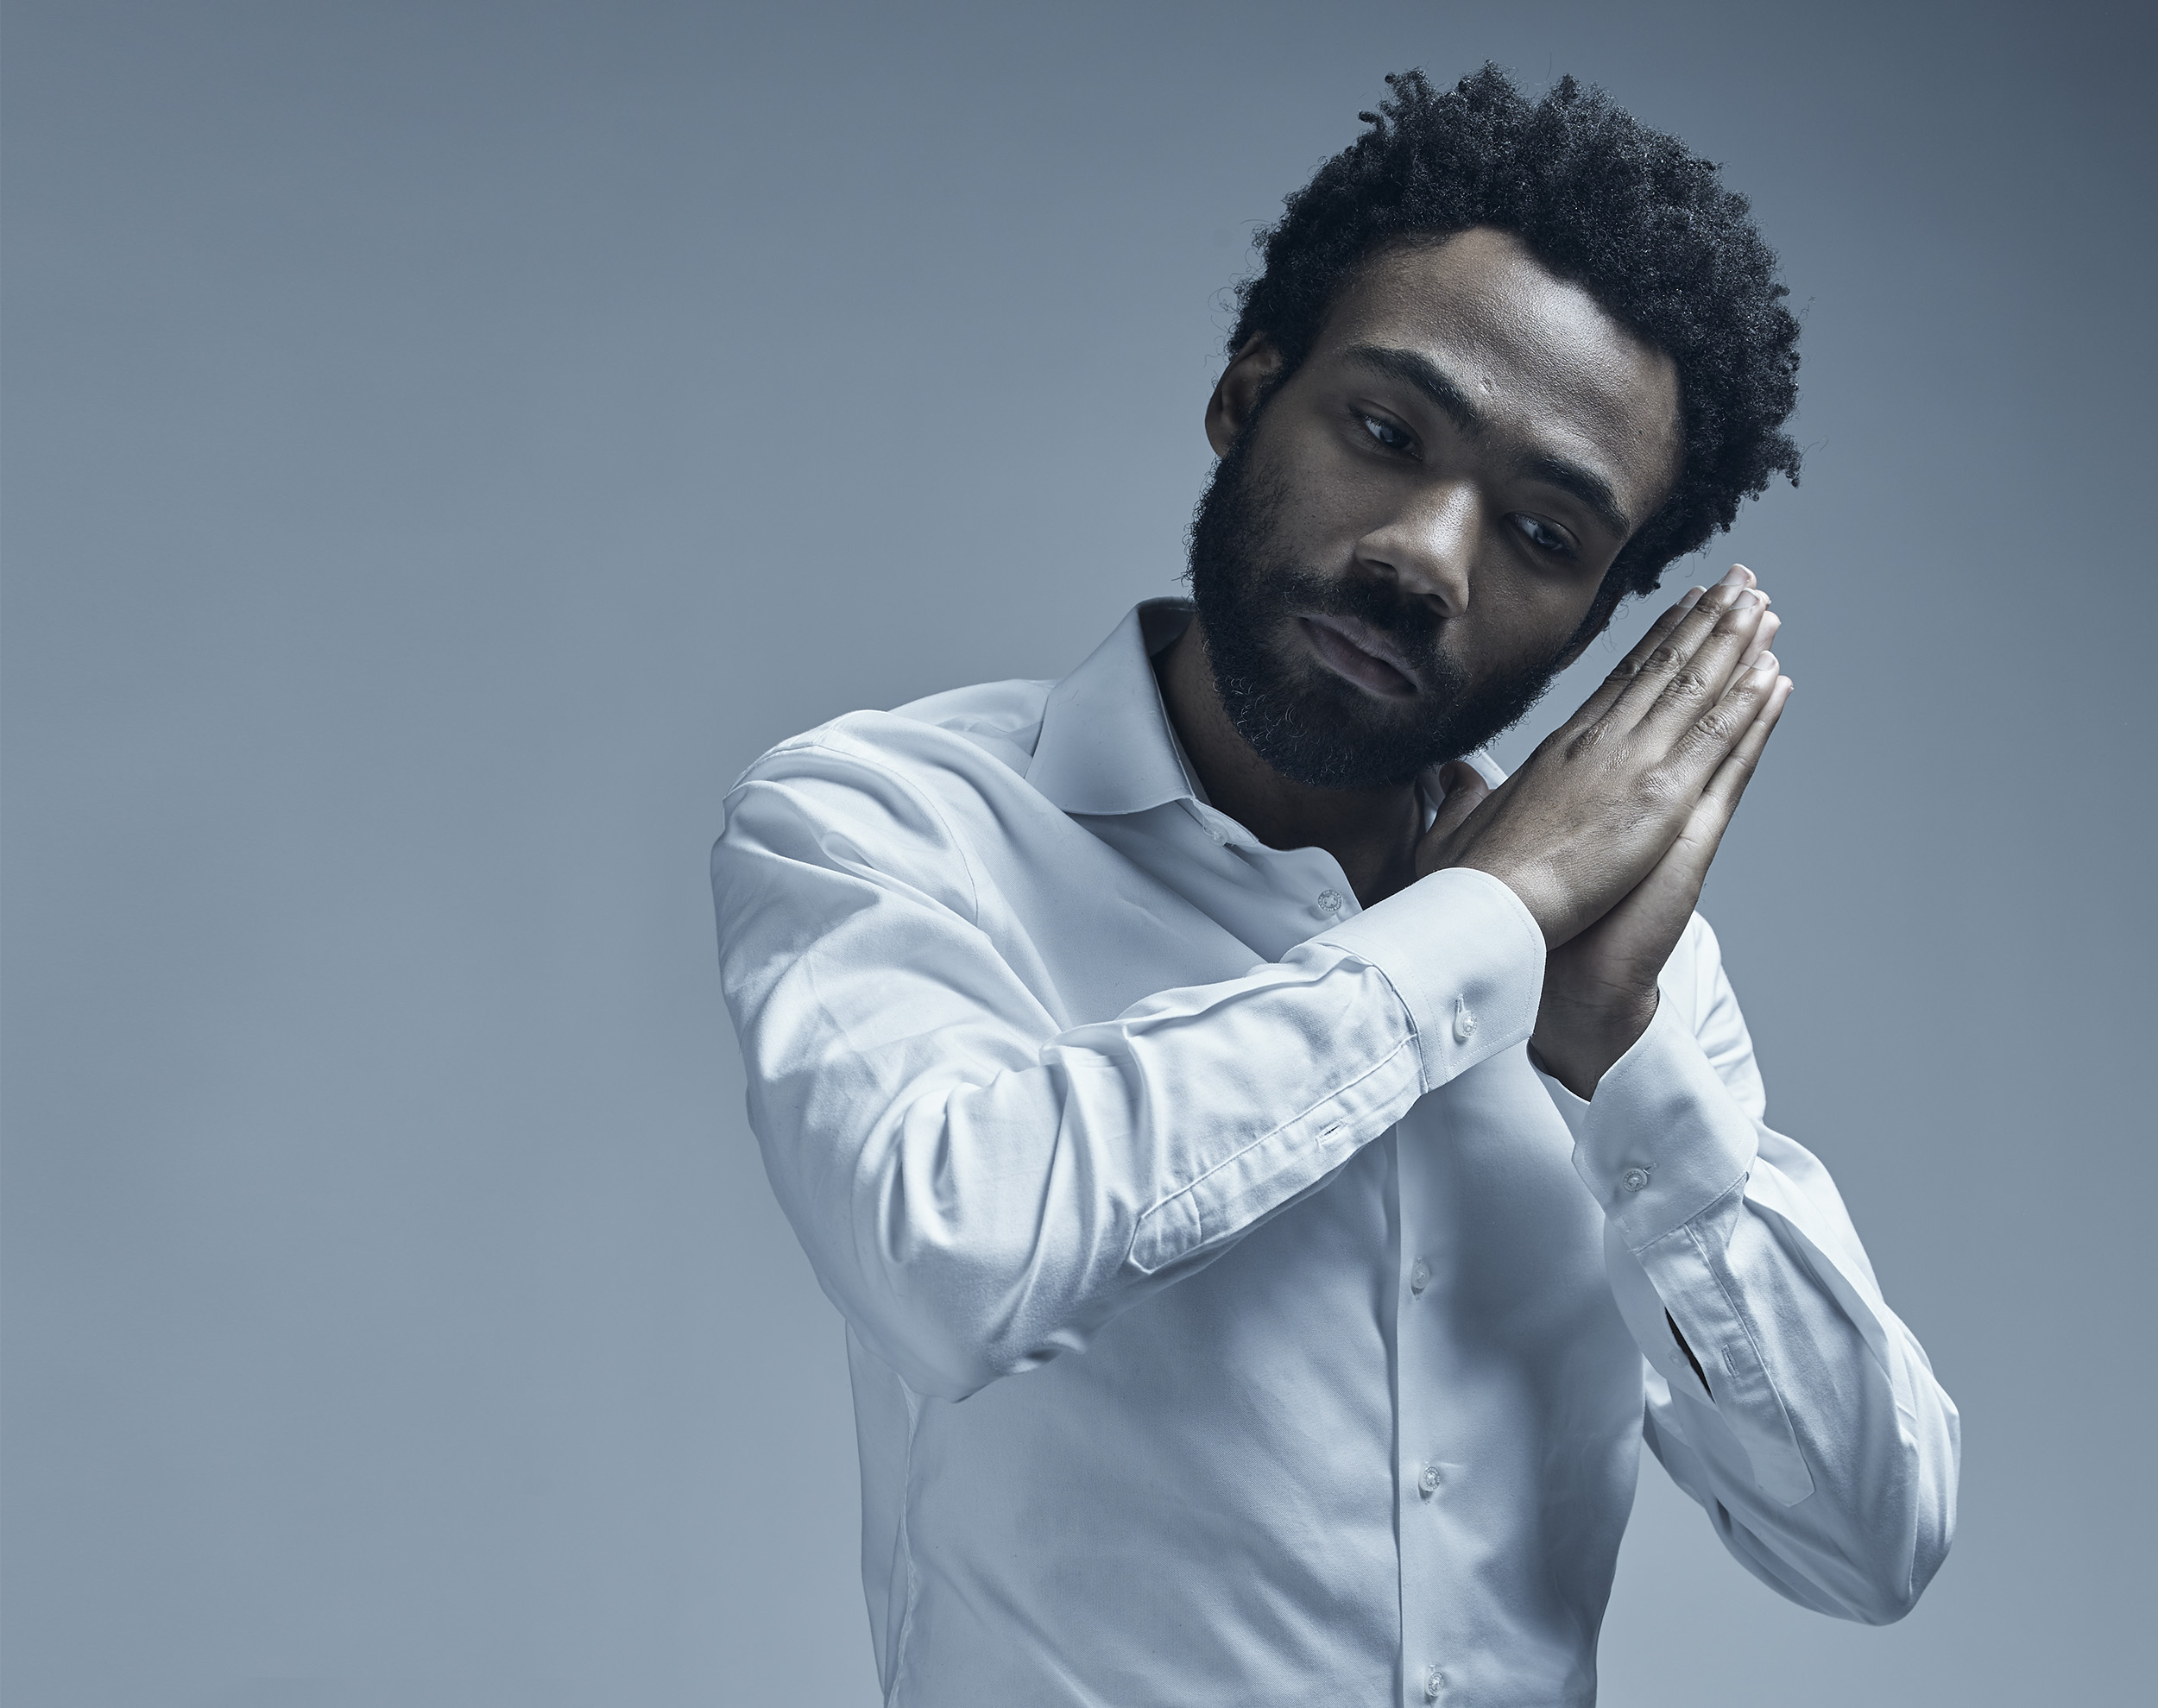 Donald-Glover-by-Robert-Ascroft-001